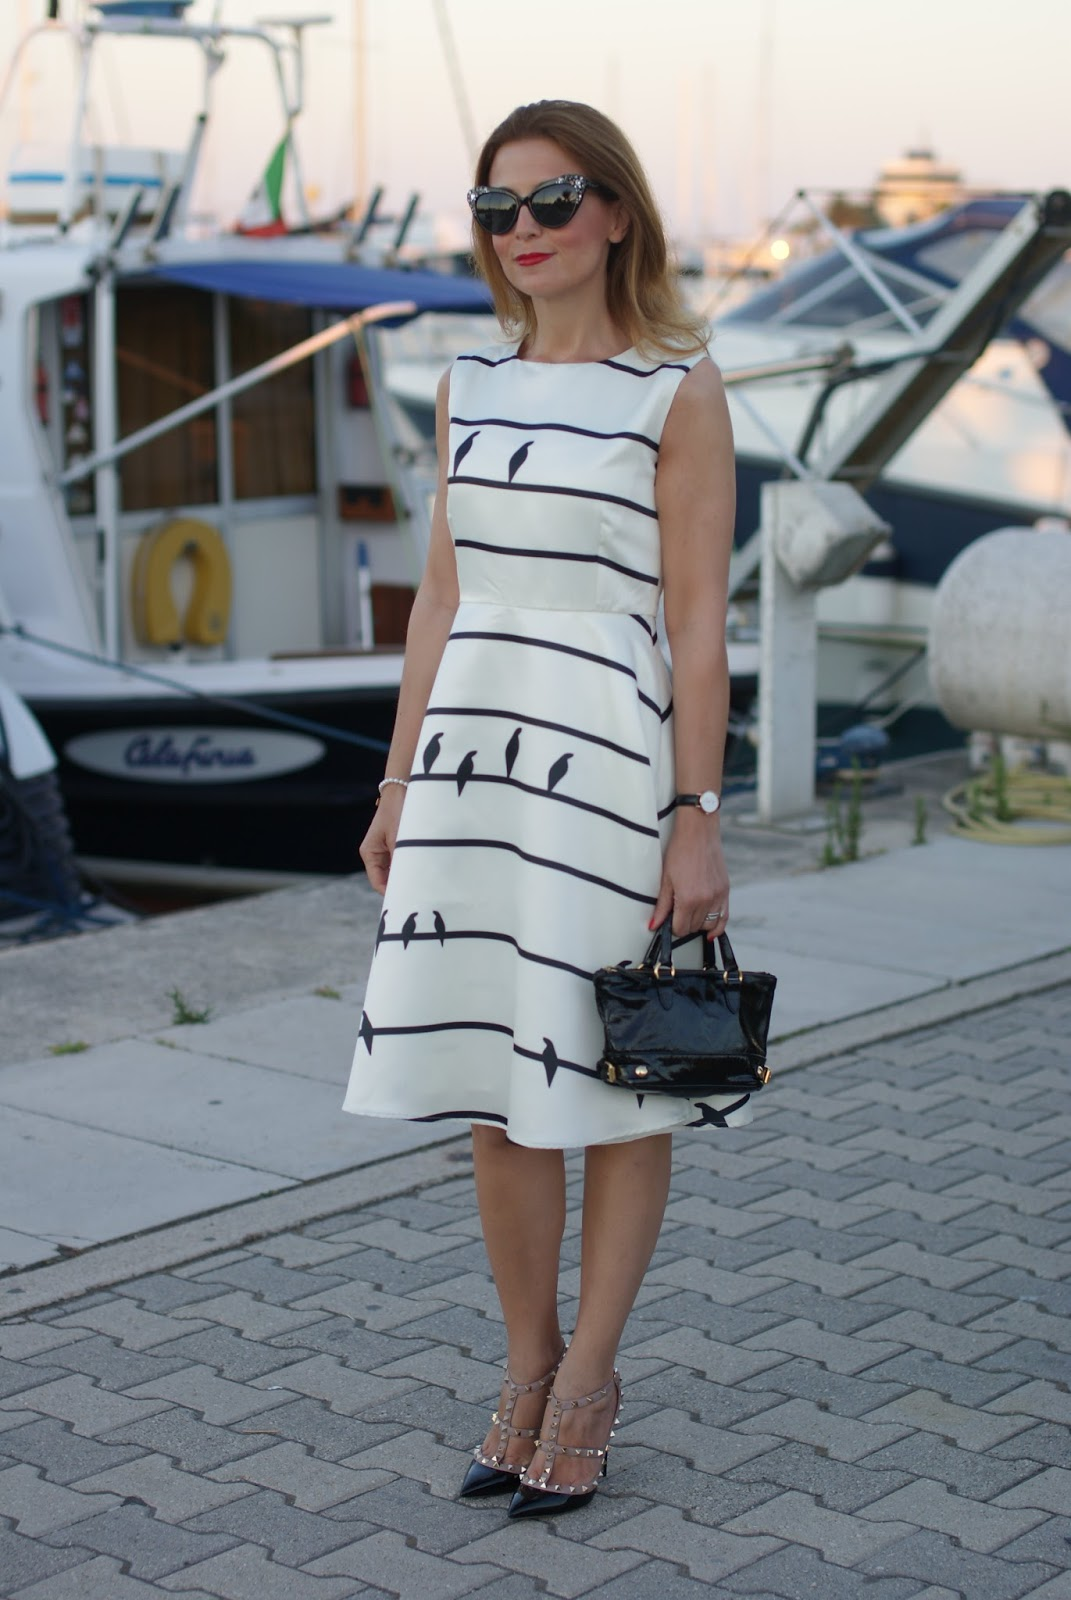 patent leather valentino rockstud pumps and birds print white dress on Fashion and Cookies